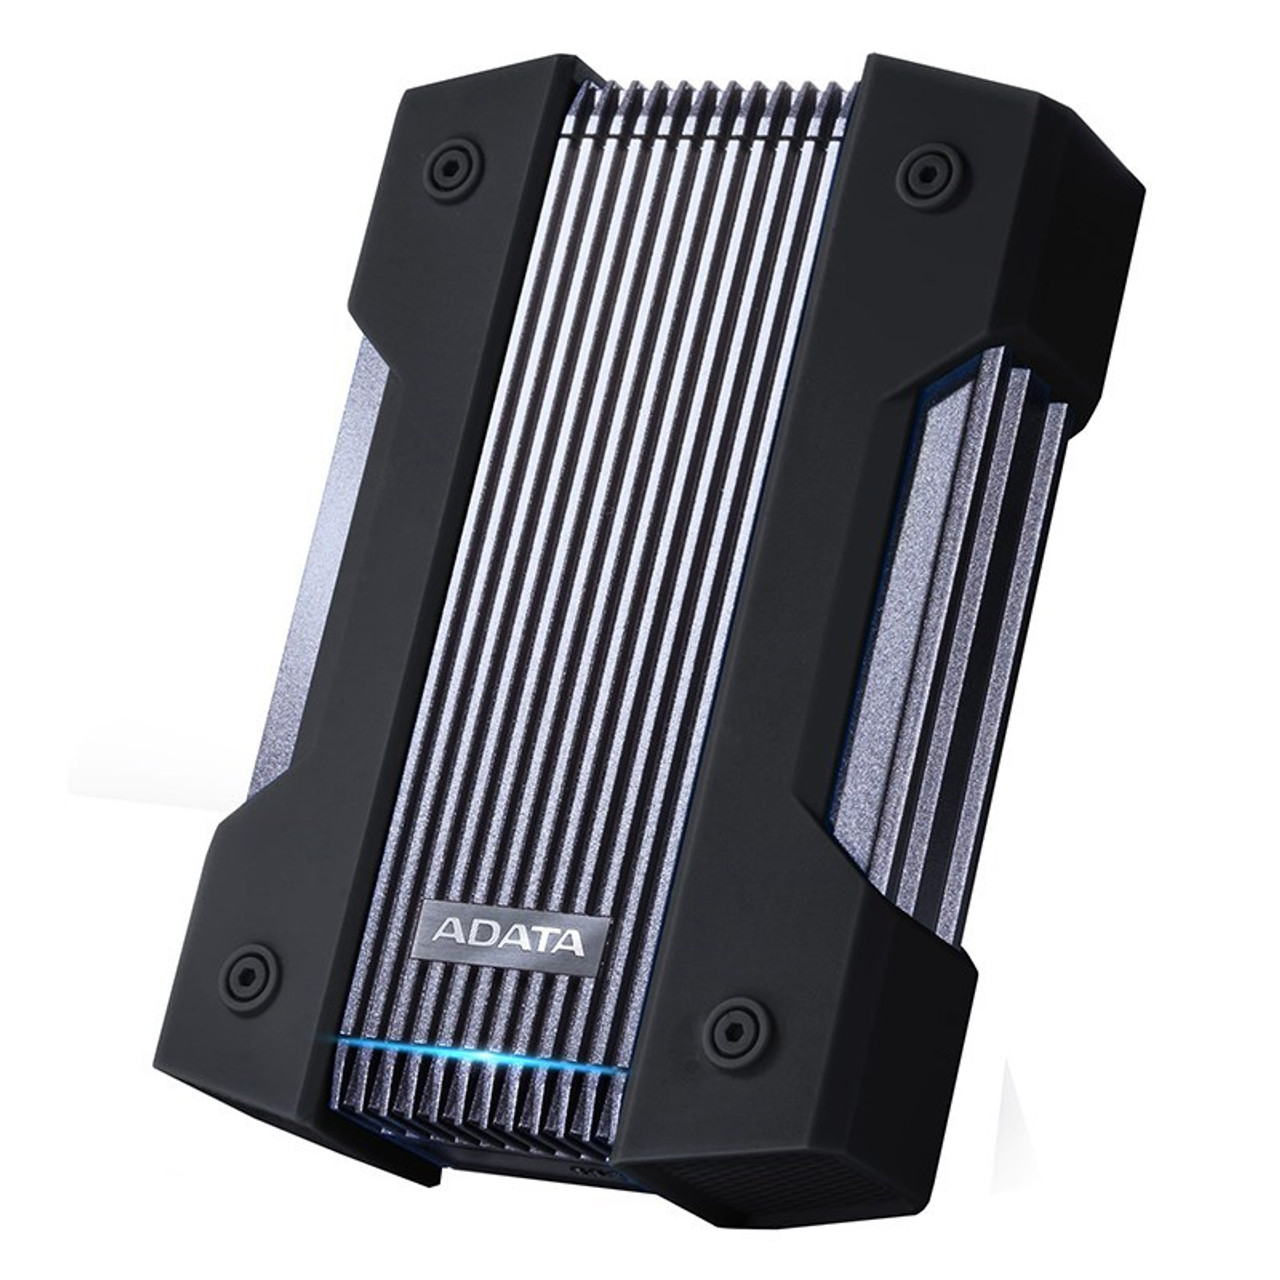 Image for Adata HD830 4TB USB 3.0 Portable External Hard Drive - Black CX Computer Superstore